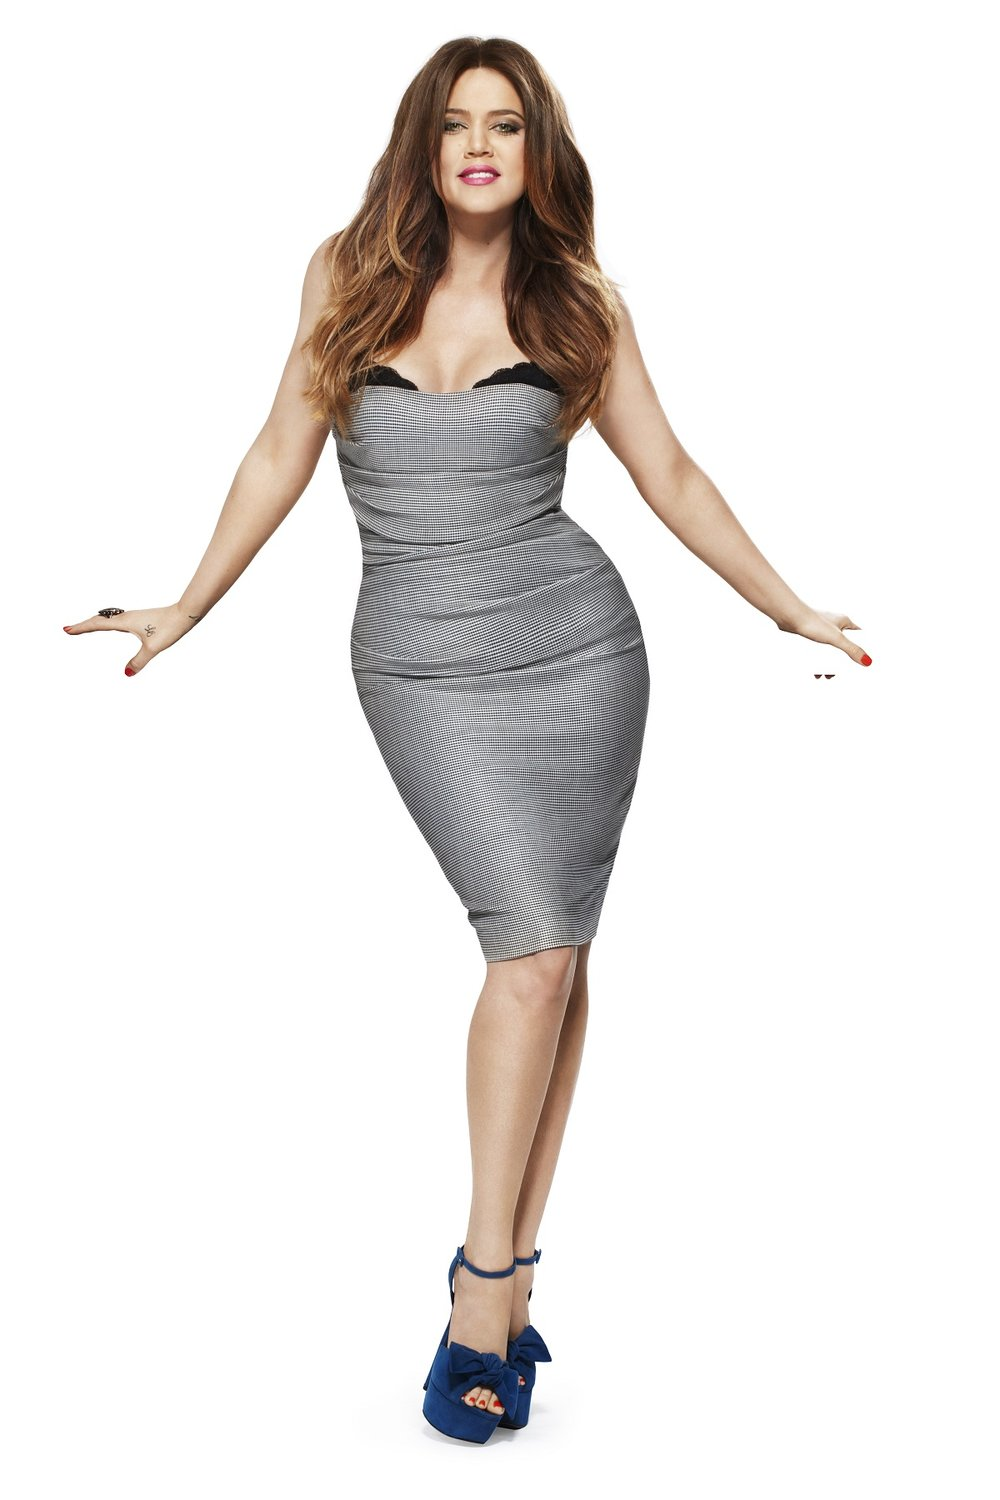 KEEPING UP WITH THE KARDASHIANS -- Season: 7 -- Pictured: Khloe Kardashian -- Photo by: Anders Overgaard/E!